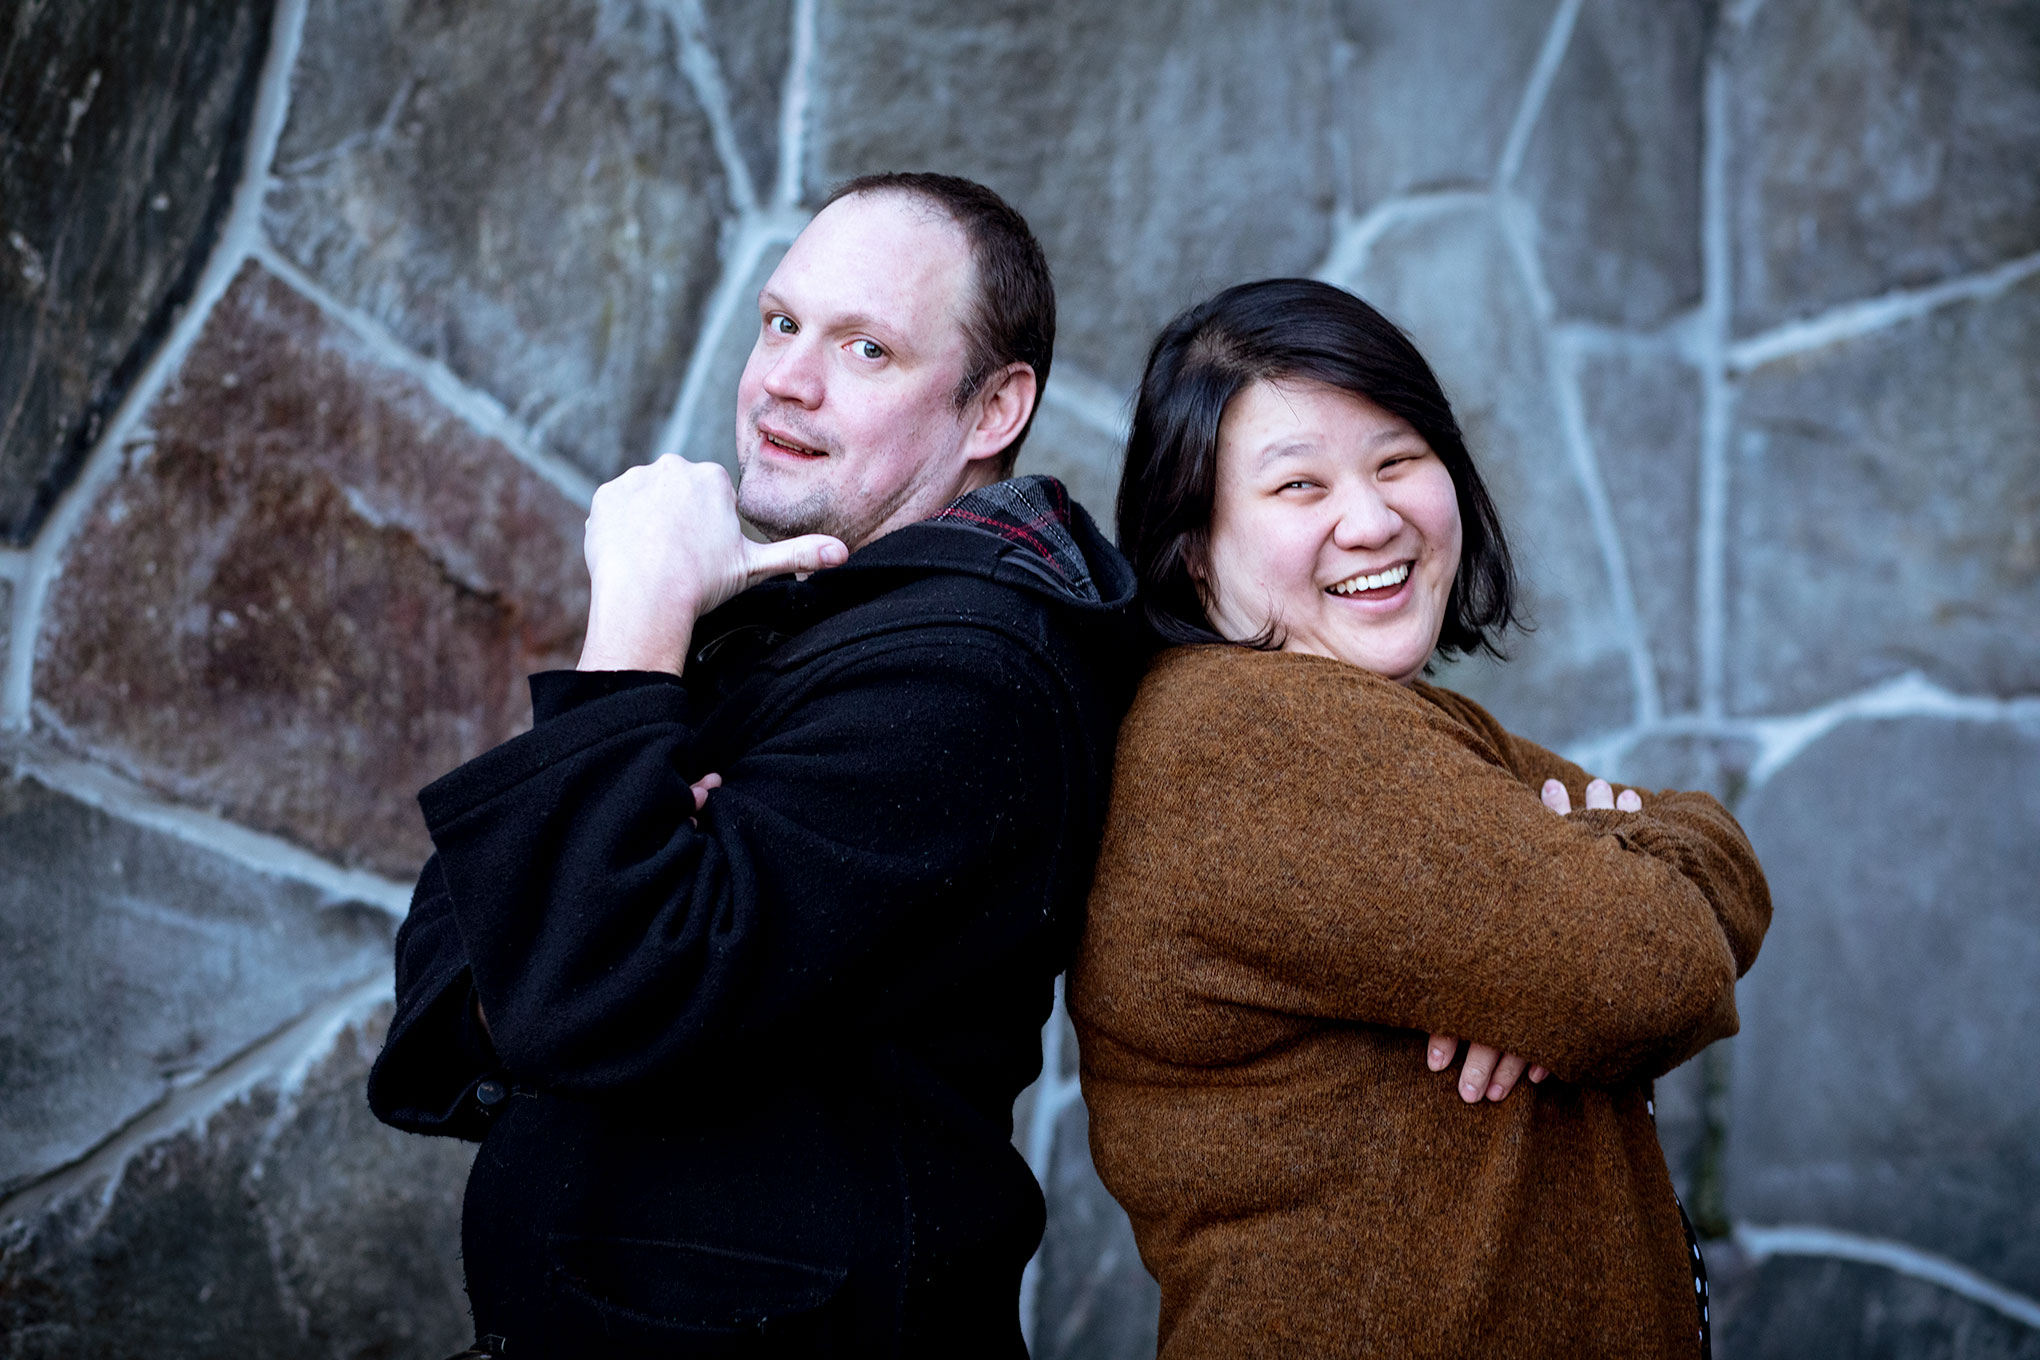 Jonatan Unge and Evelyn Mok. Photo by Saerun Norén.